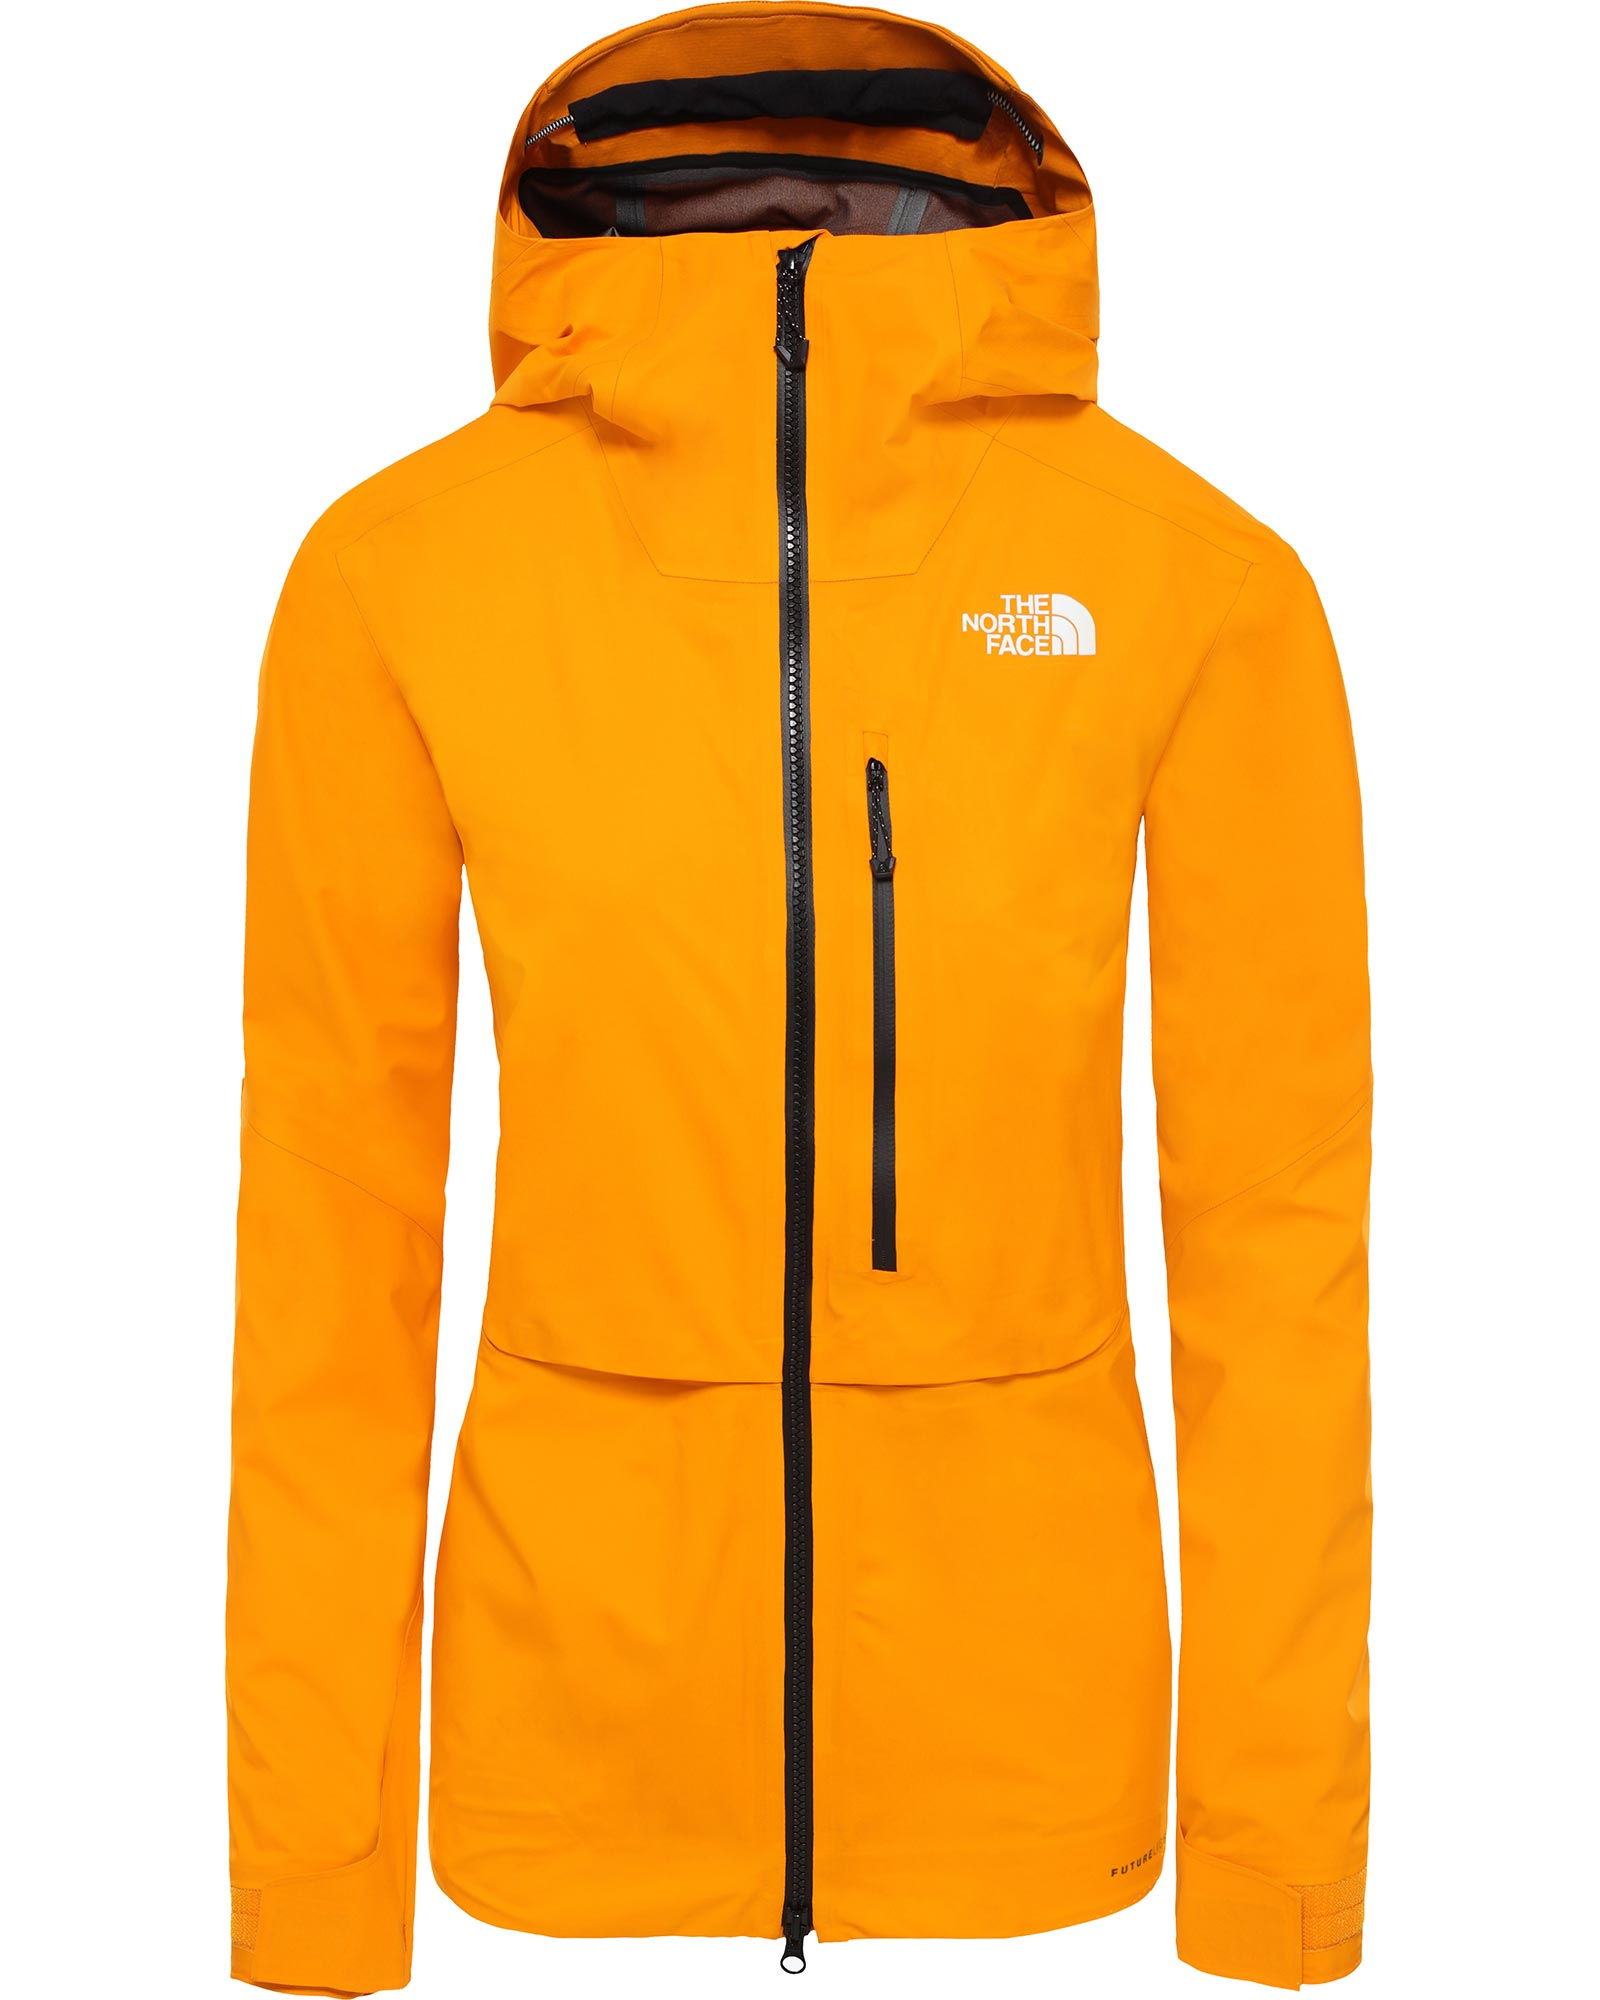 The North Face Women's Summit Series L5 LT FUTURELIGHT Jacket 0